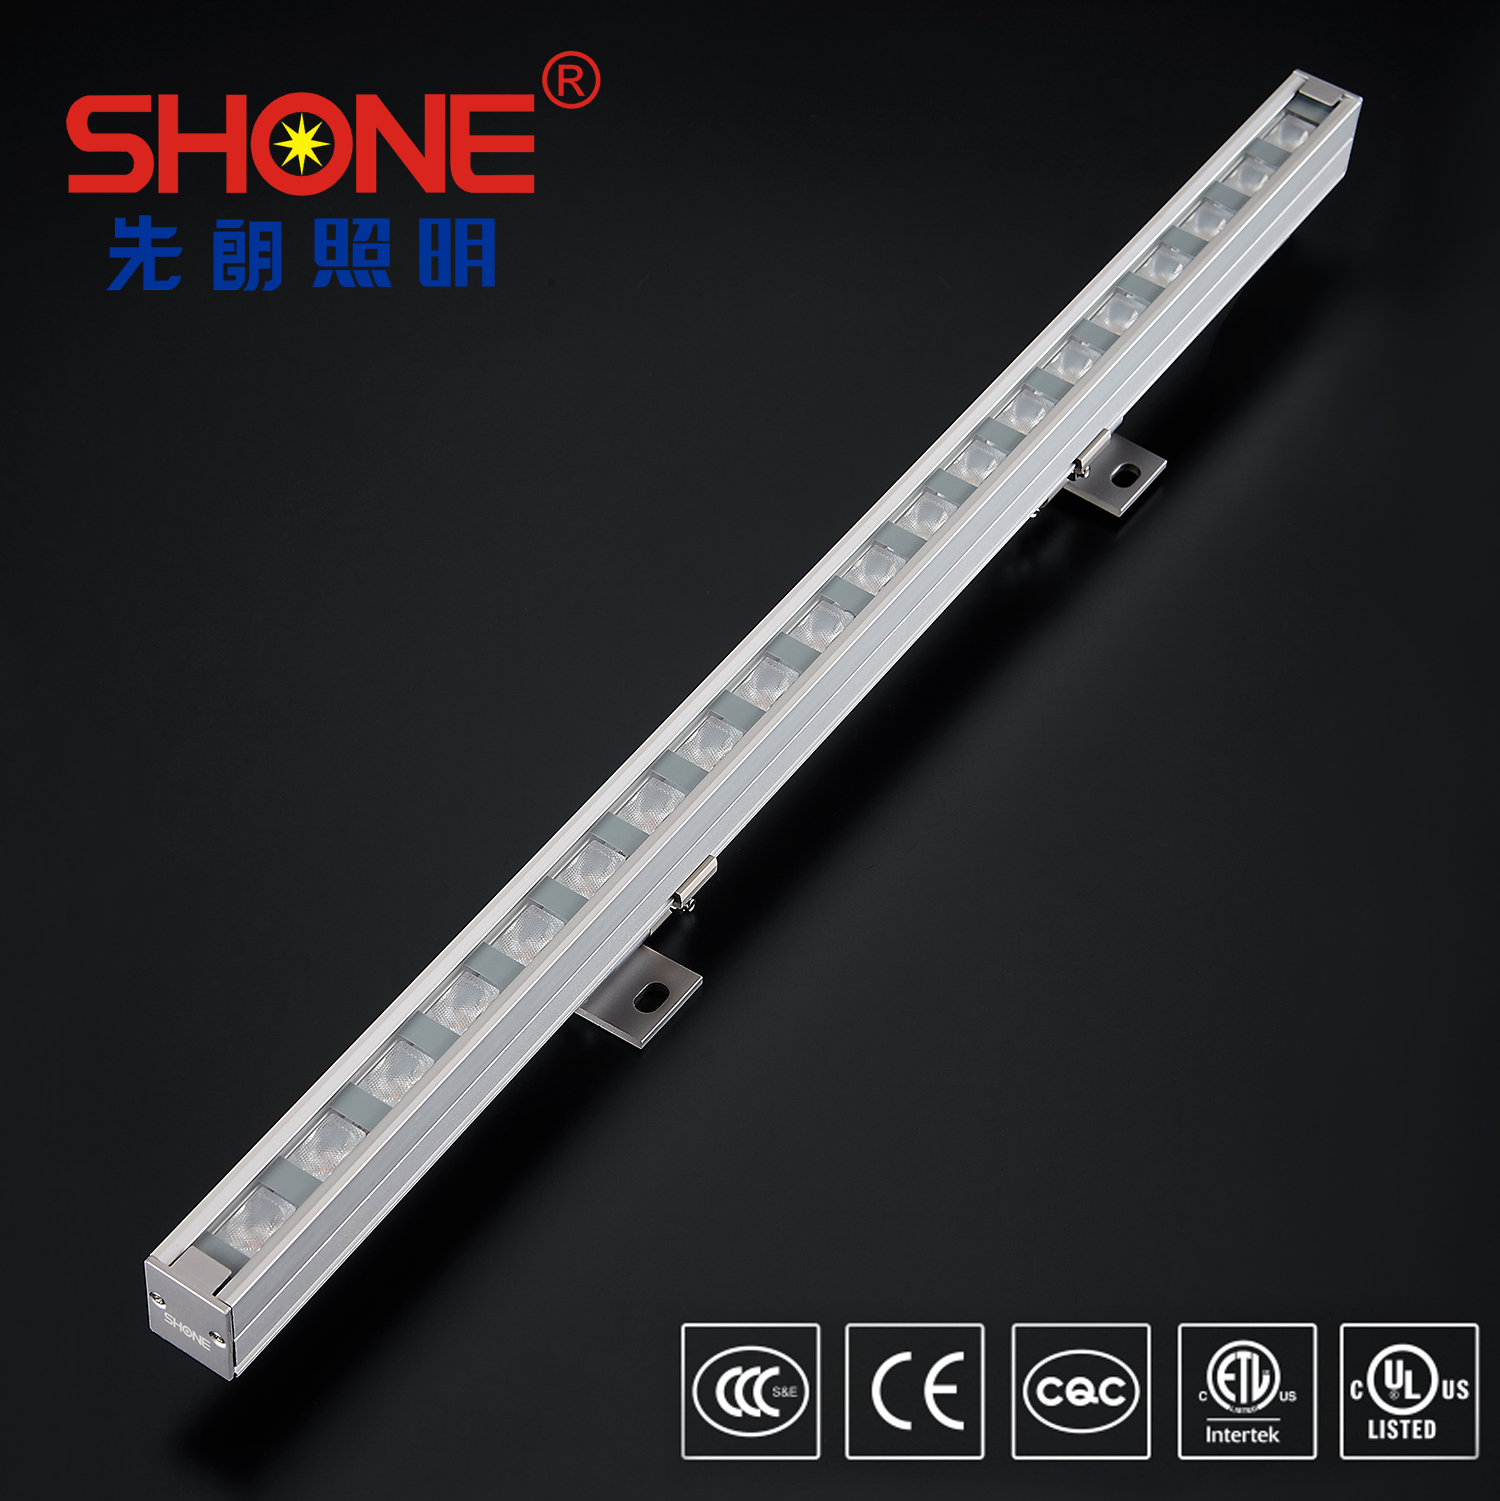 Shone Lighting 22x27LED Linear Light Wall Washer with CE ETL Certificate IP66 for Outdoor Lighting